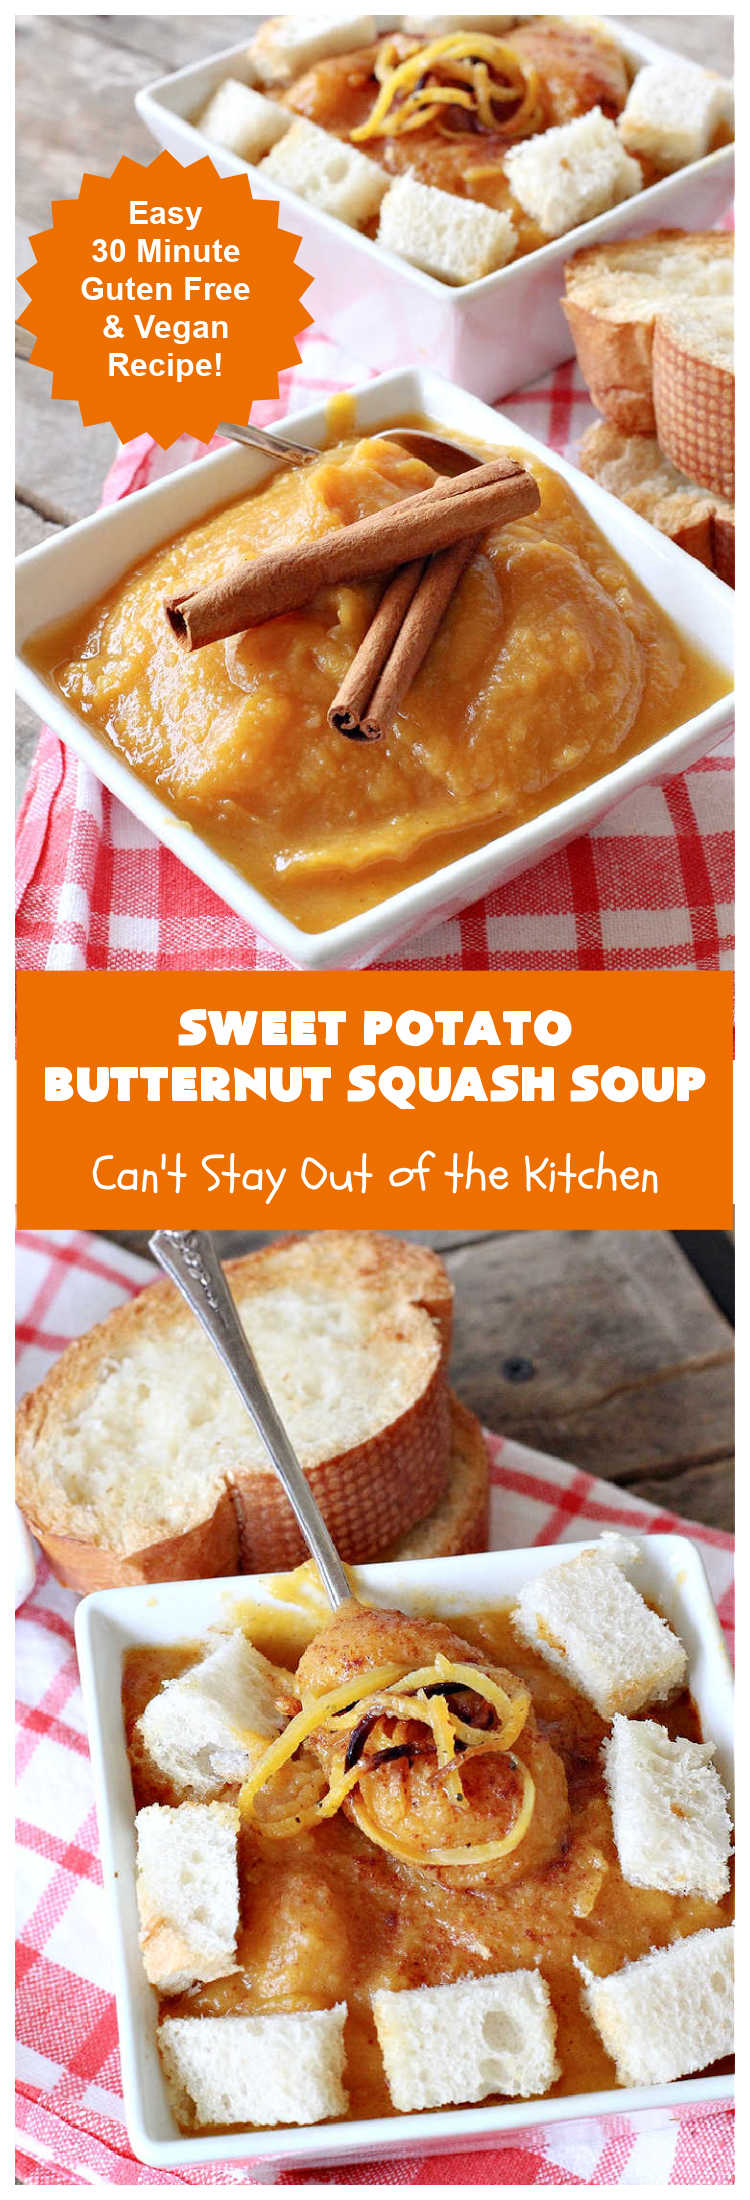 Sweet Potato Butternut Squash Soup | Can't Stay Out of the Kitchen | this delectable 30-minute #soup is amazing comfort food. It's terrific for cold, winter days. It's healthy, #GlutenFree & #vegan. #apples #ButternutSquash #SweetPotatoes #ginger #SweetPotatoSoup #ButternutSquashSoup #SweetPotatoButternutSquashSoup